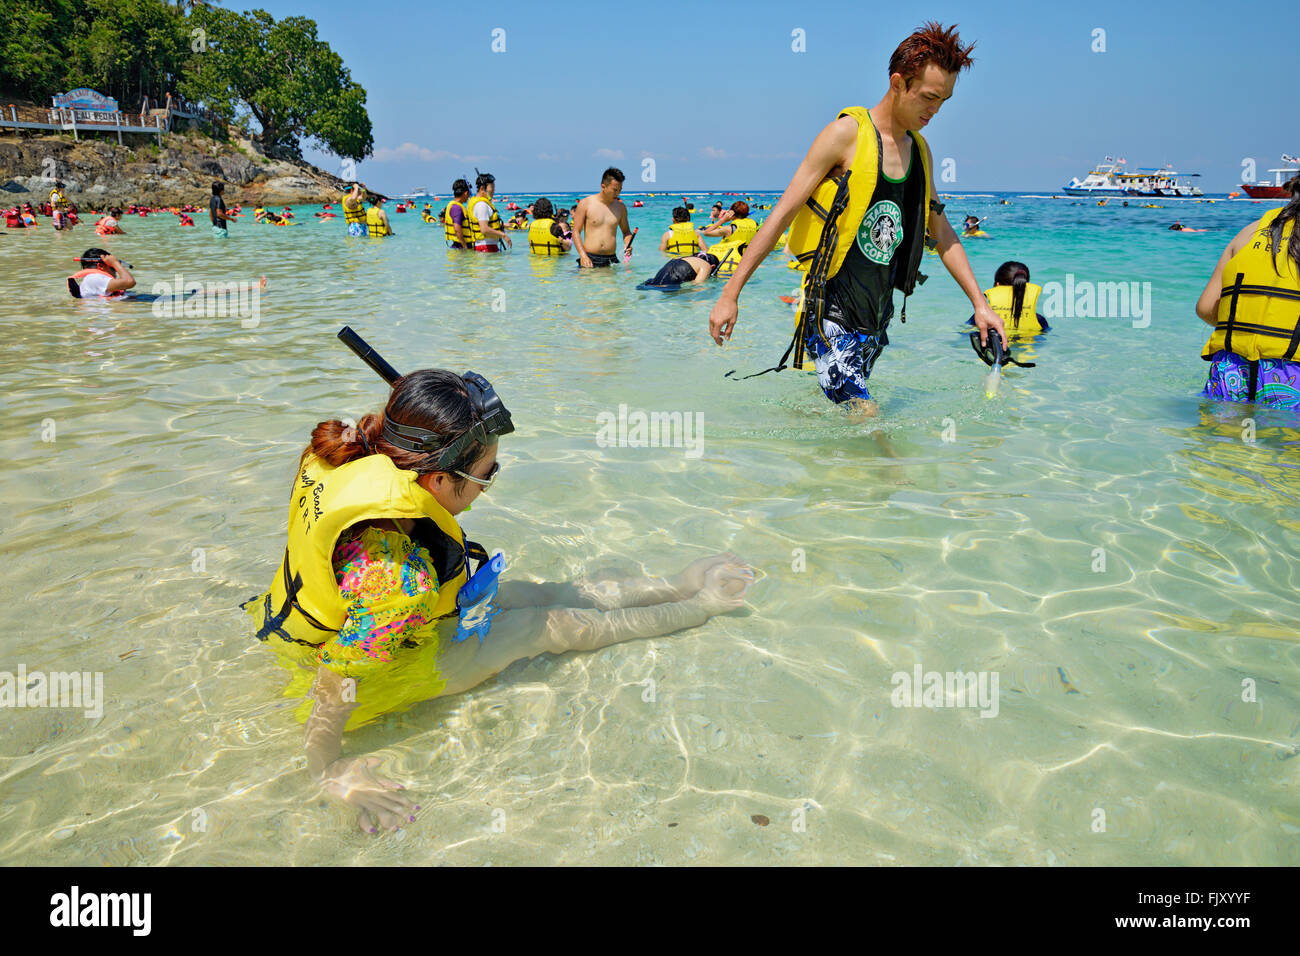 Pulau Pinang, a small island next to Pulau Redang, is a popular snorkeling spot for Chinese tourist groups. - Stock Image